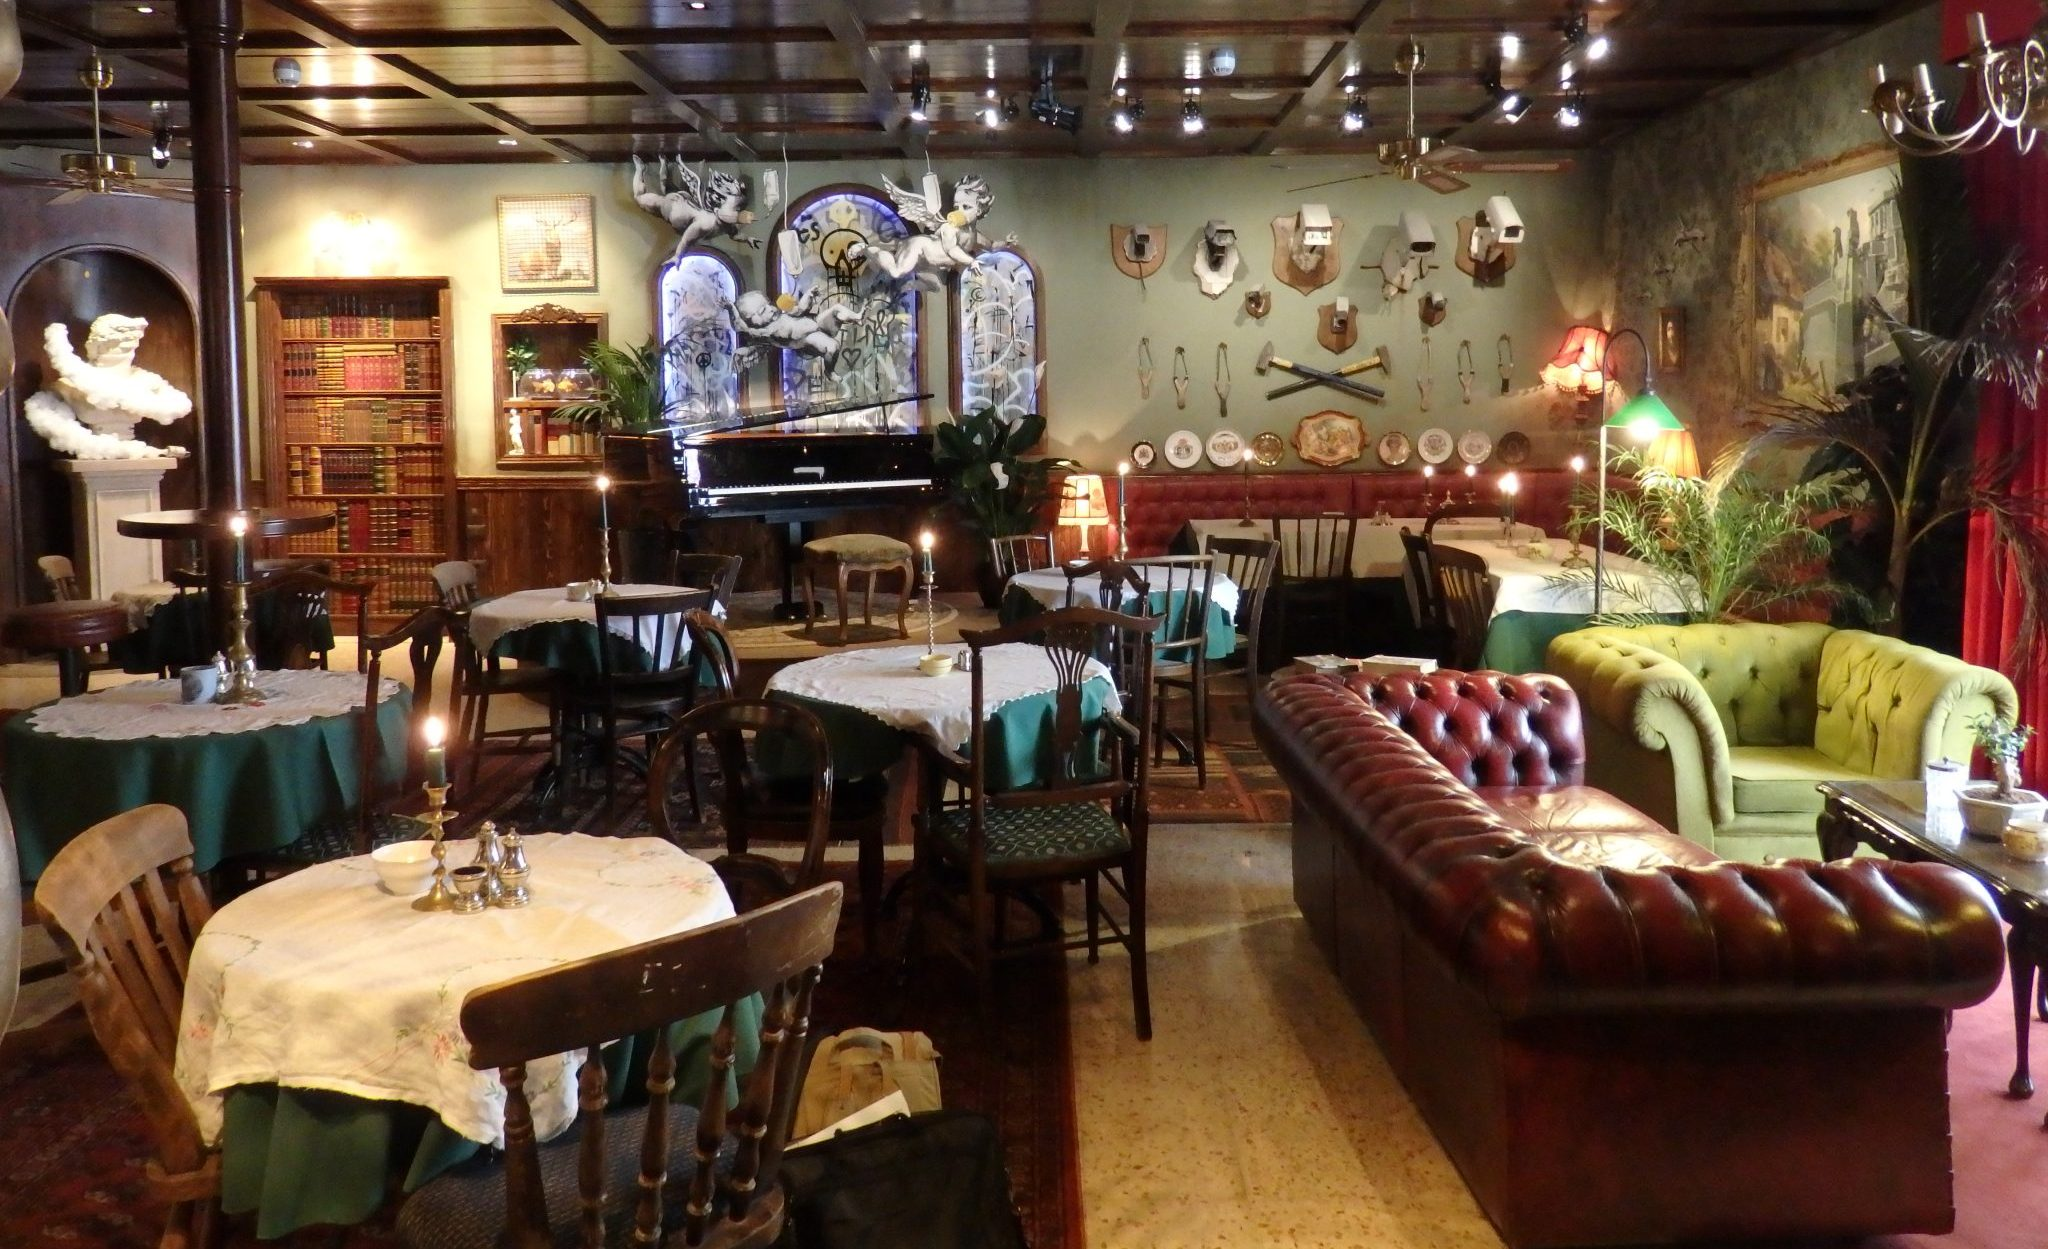 Visiting Bethlehem: The lobby and piano bar of the Walled Off Hotel. You can see the player piano on a raised platform in back, with cherubs in oxygen masks above it. Notice the mounted security cameras, and also the bookcase to the left, which is really a door.